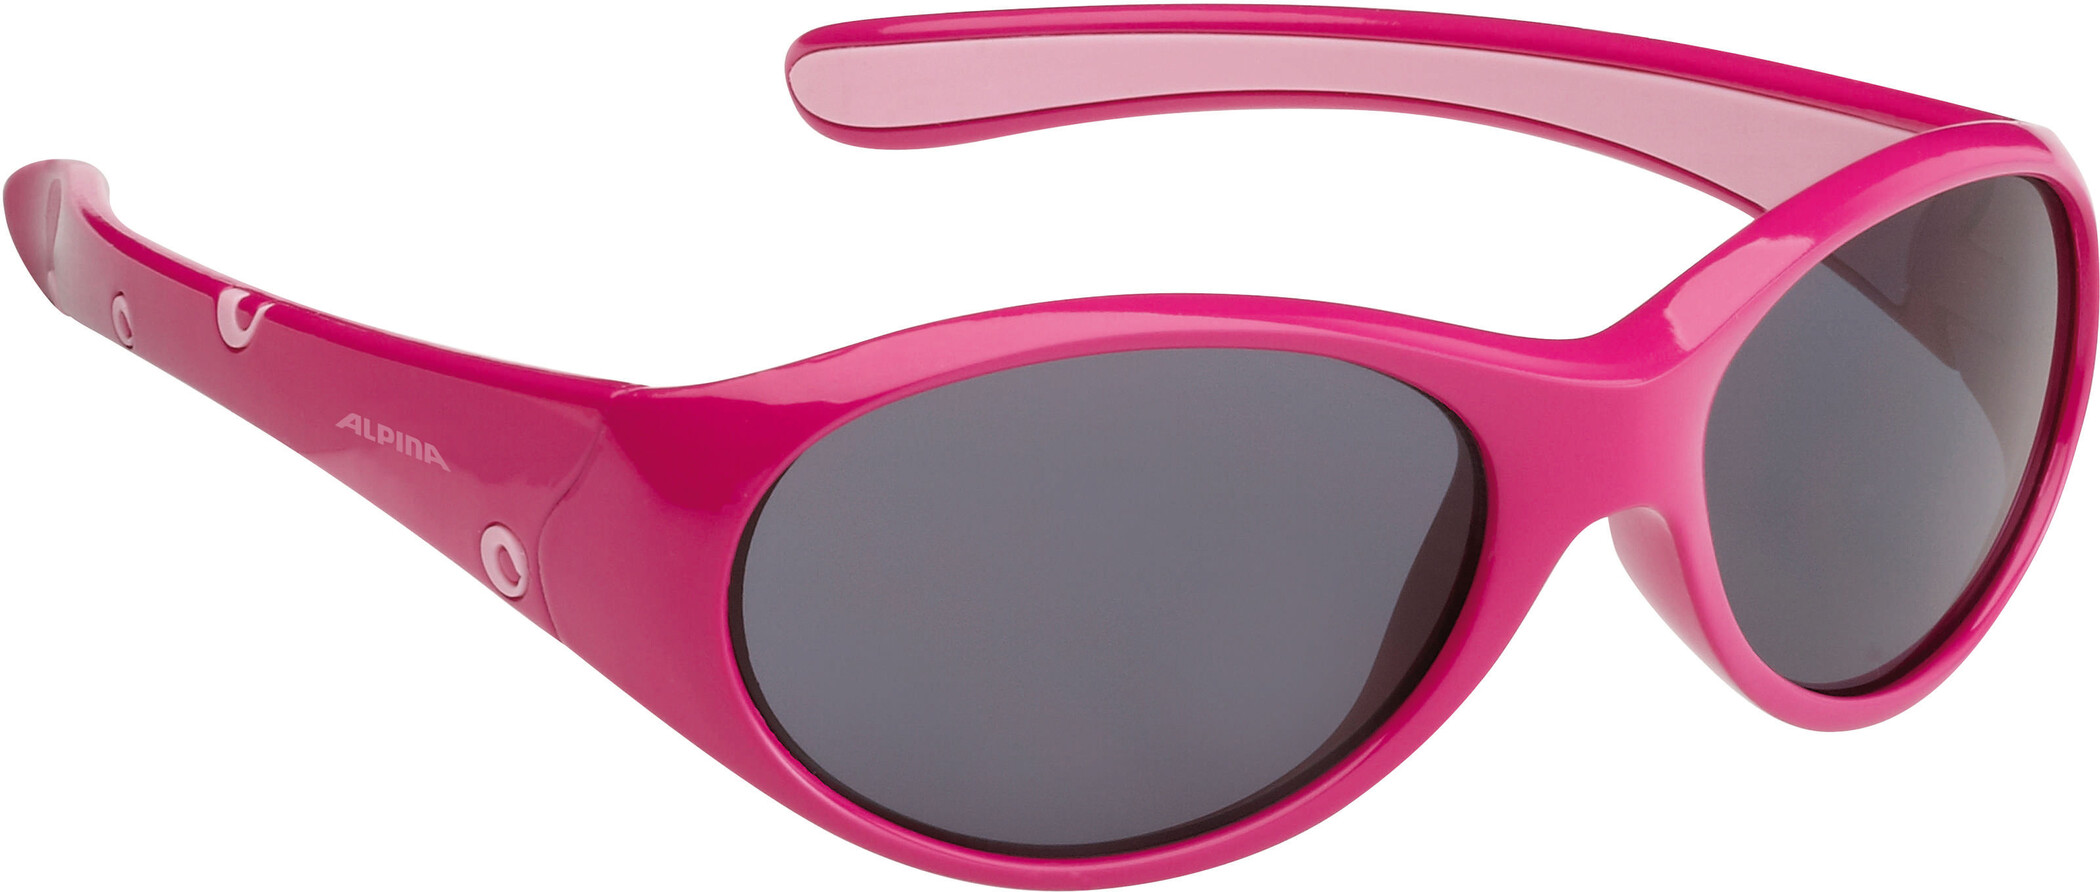 online store 8be5b 44acc Alpina Flexxy Glasses Girls pink-rose.jpg